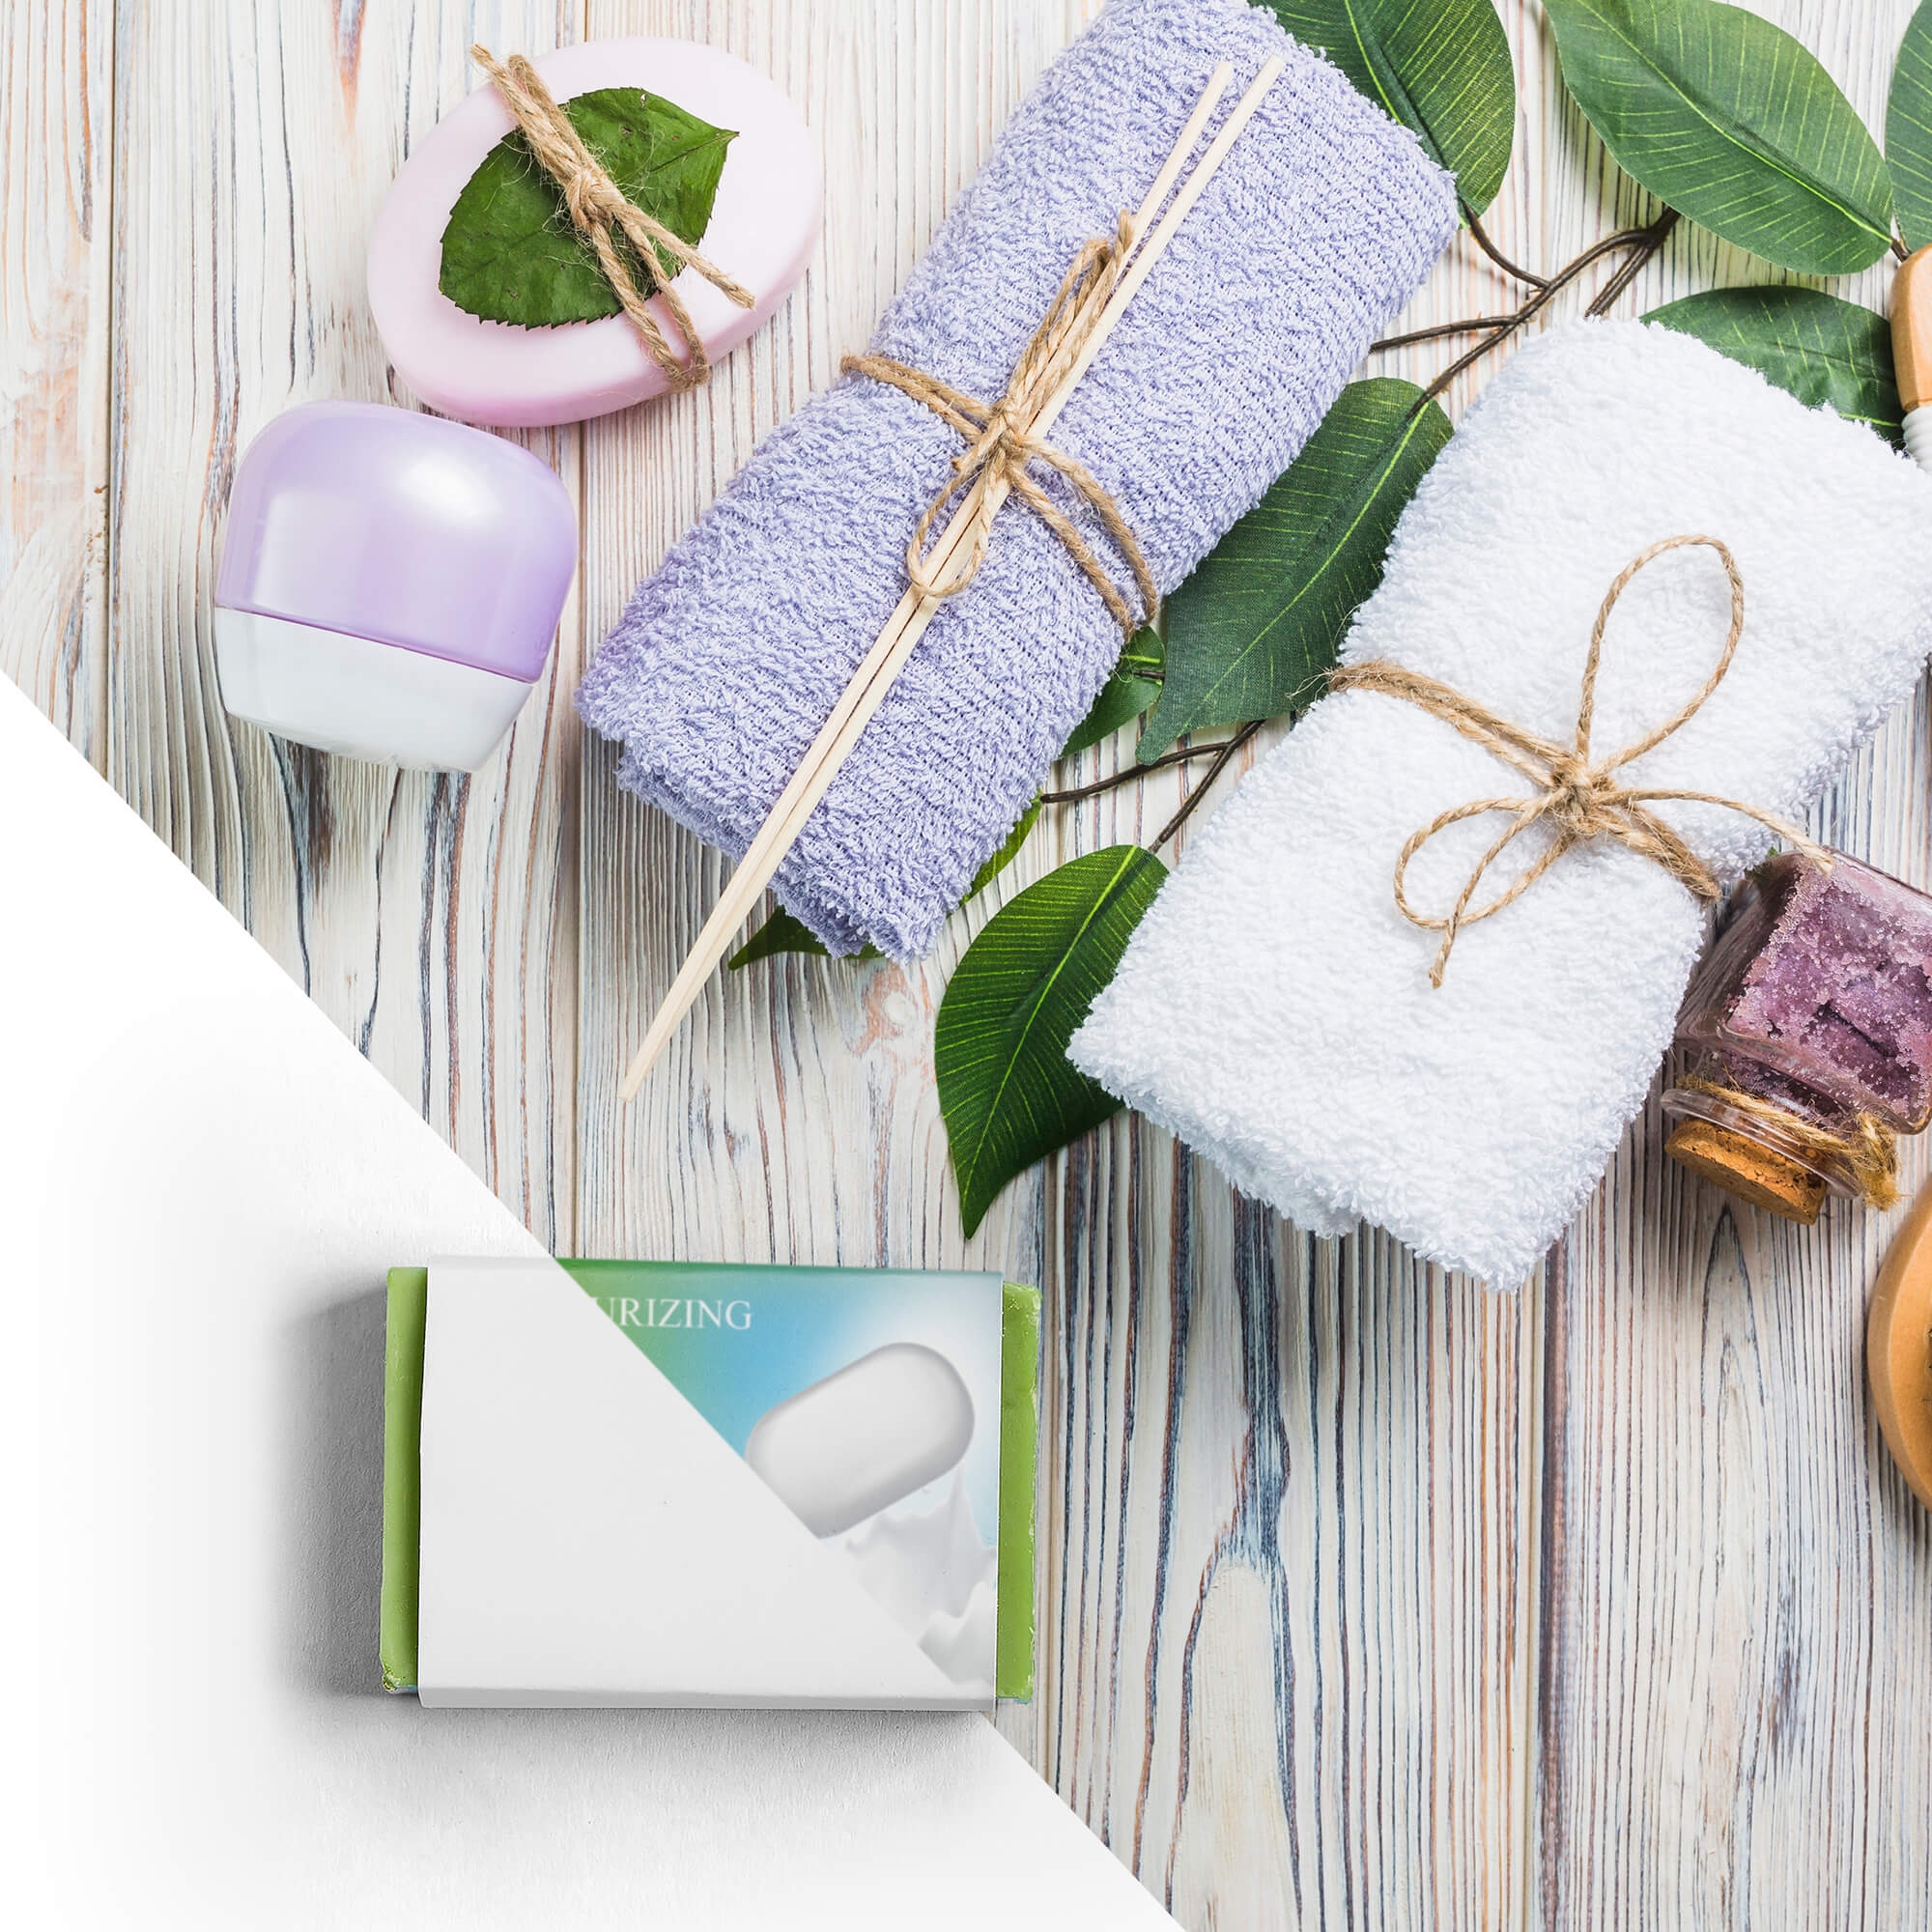 Editable Free Soap Packaging Mockup PSD Template